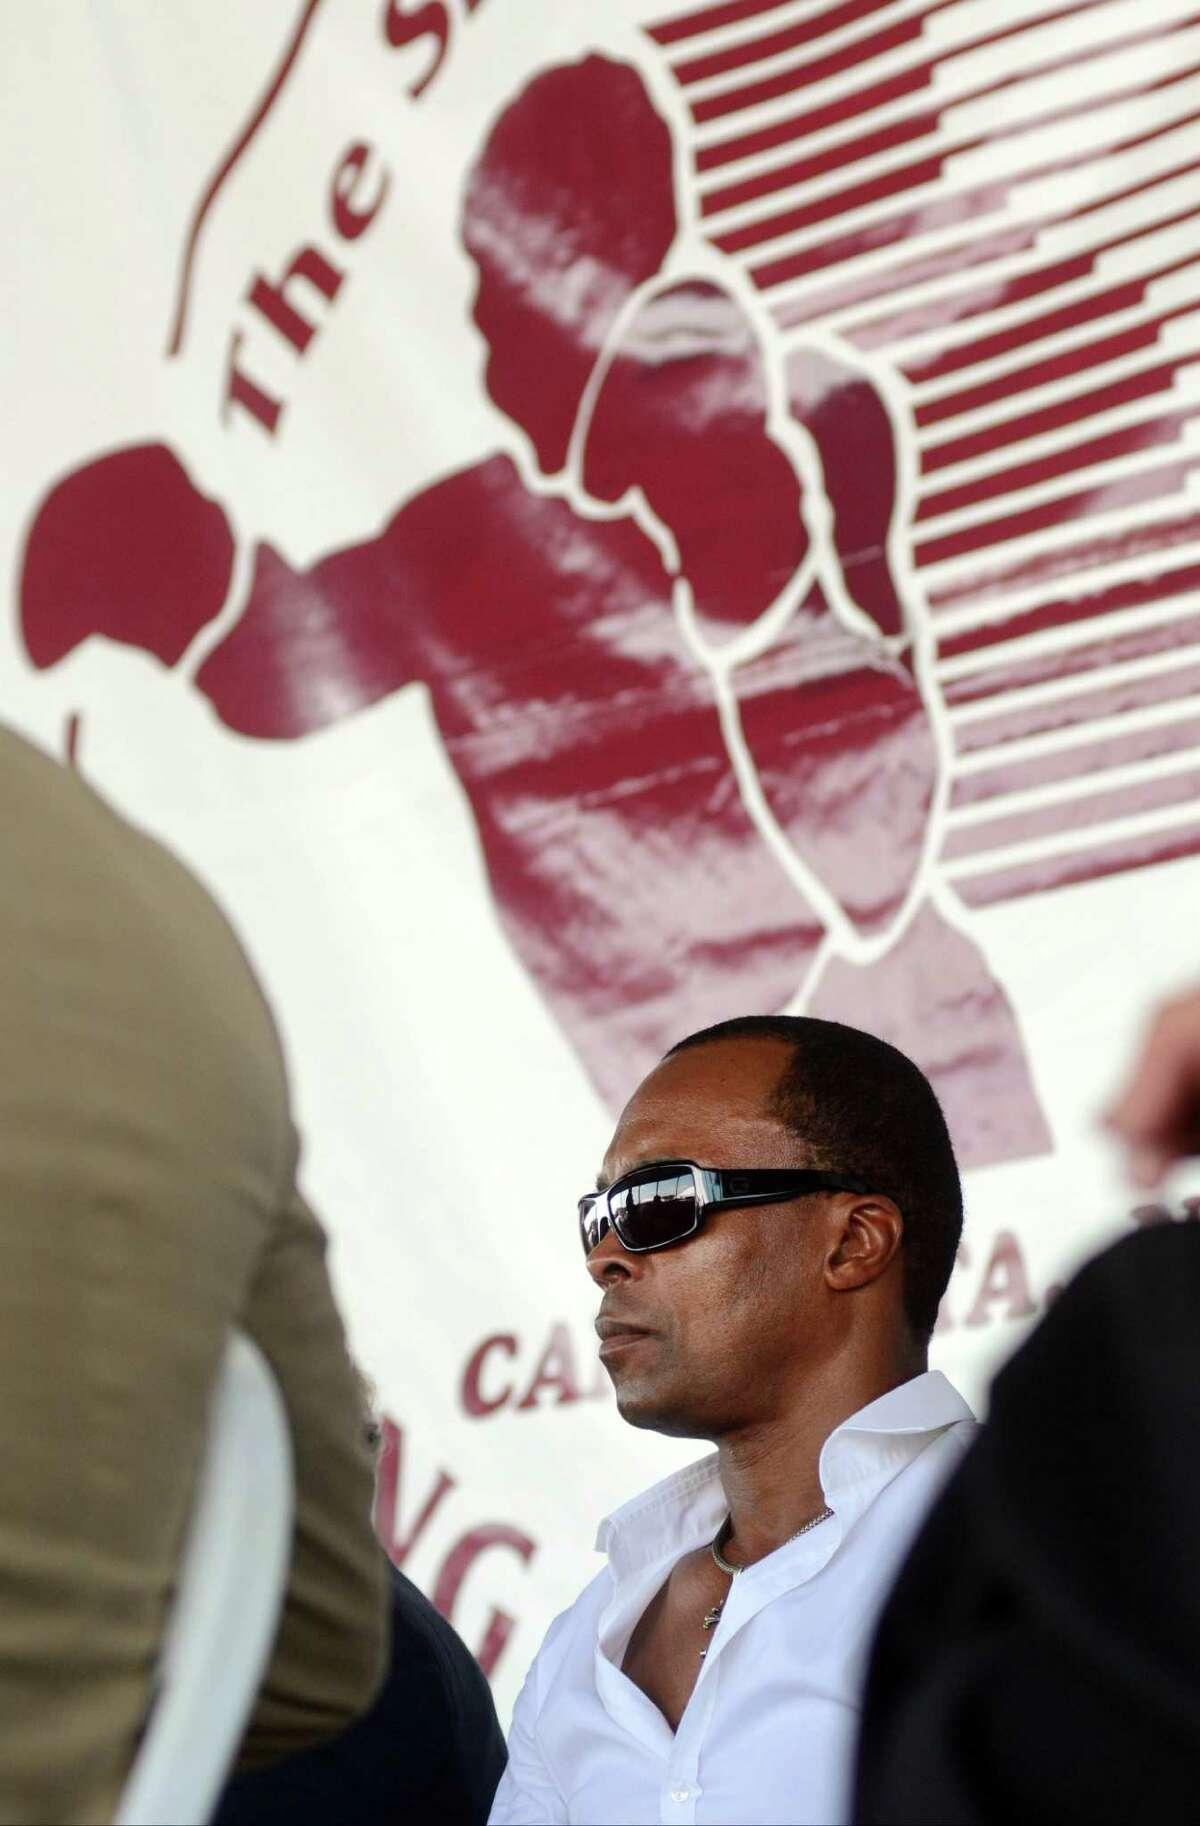 Sugar Ray Leonard attends the International Boxing Hall of Fame induction ceremony in Canastota, N.Y., Sunday, June 10, 2012. Leonard was inducted in 1997.